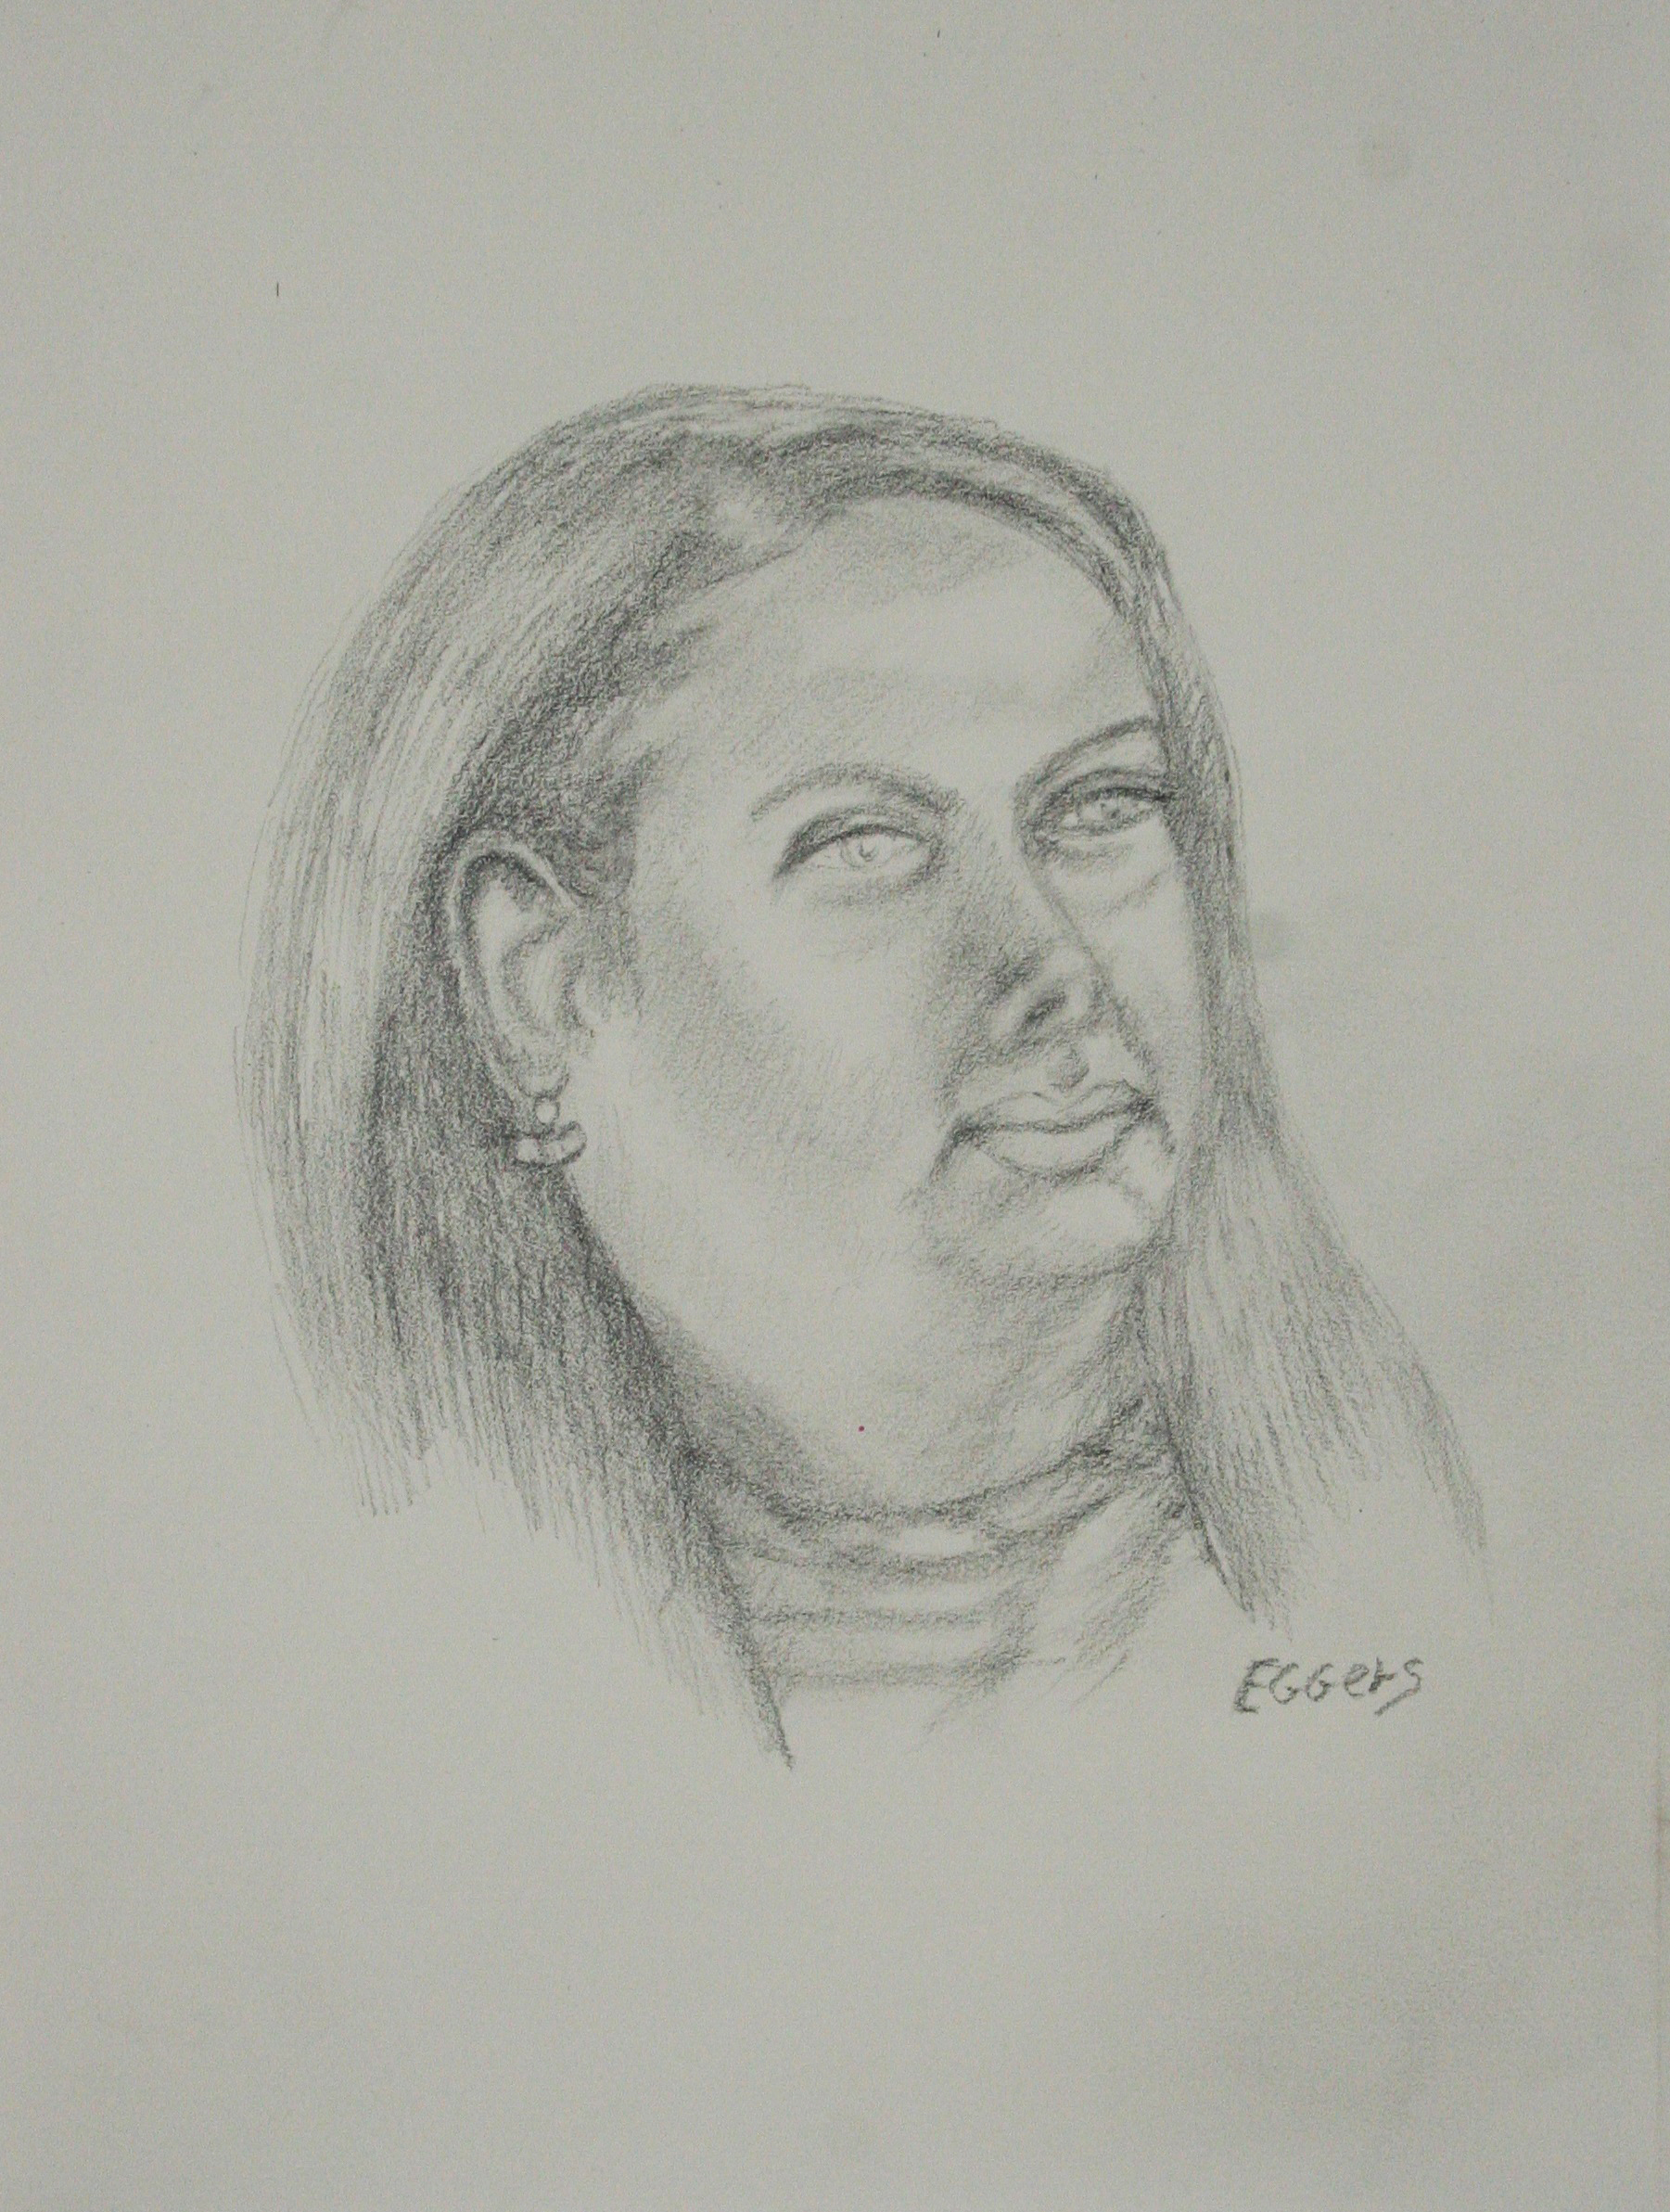 Bob Eggers did this 2-hour drawing.